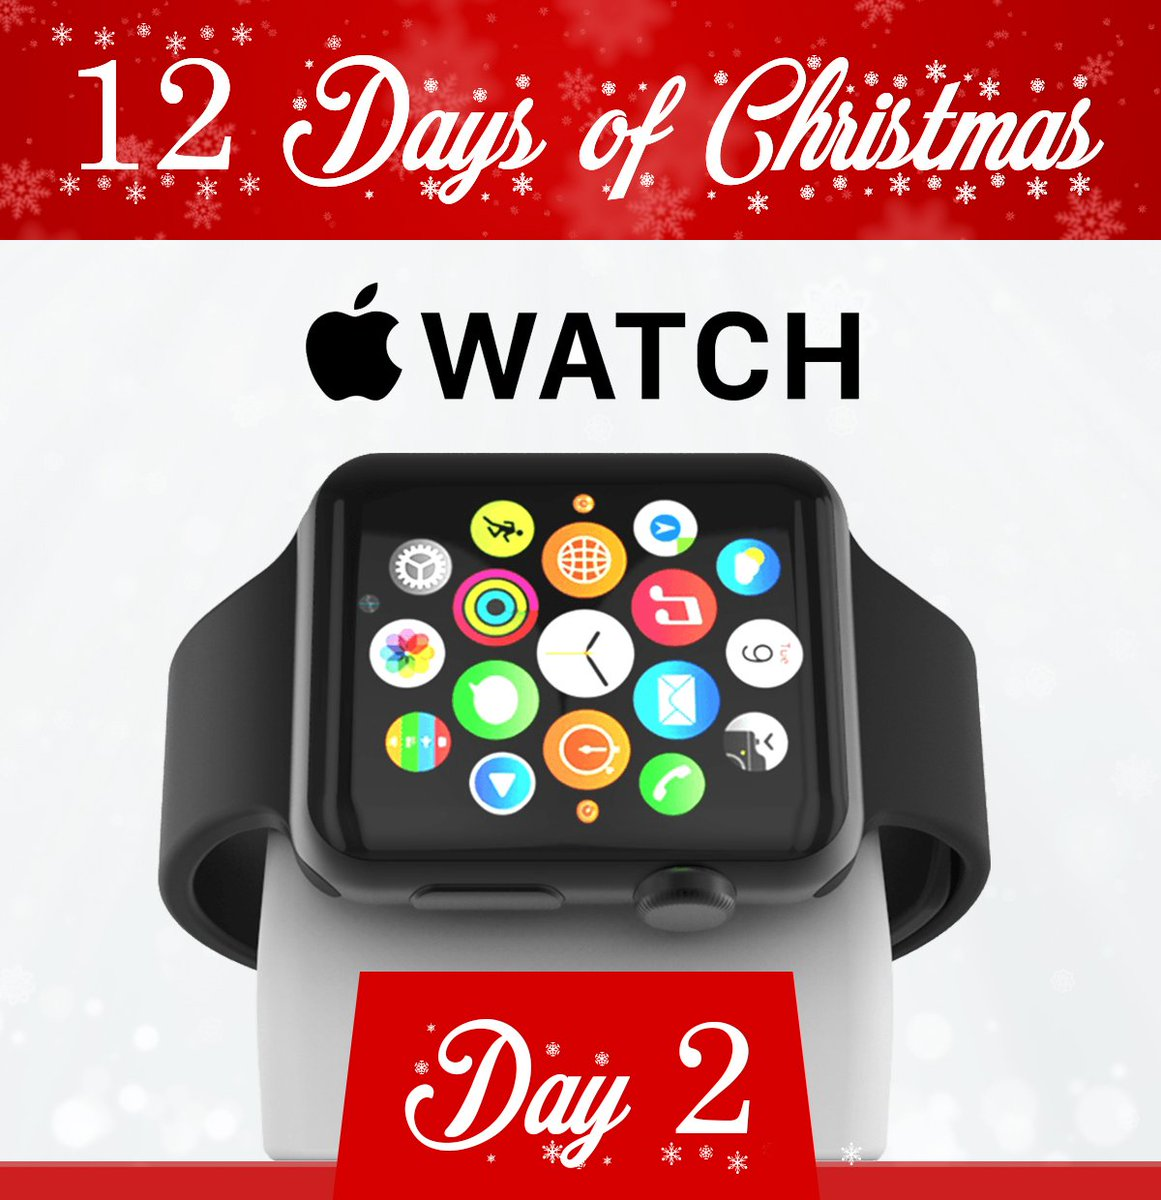 test Twitter Media - 🎁 Day 2 of our #12DaysofChristmas Giveaways at #EndrasBMW! Each vehicle purchase today will receive a FREE Apple Watch! 🎄 https://t.co/d6iqCZoOrs